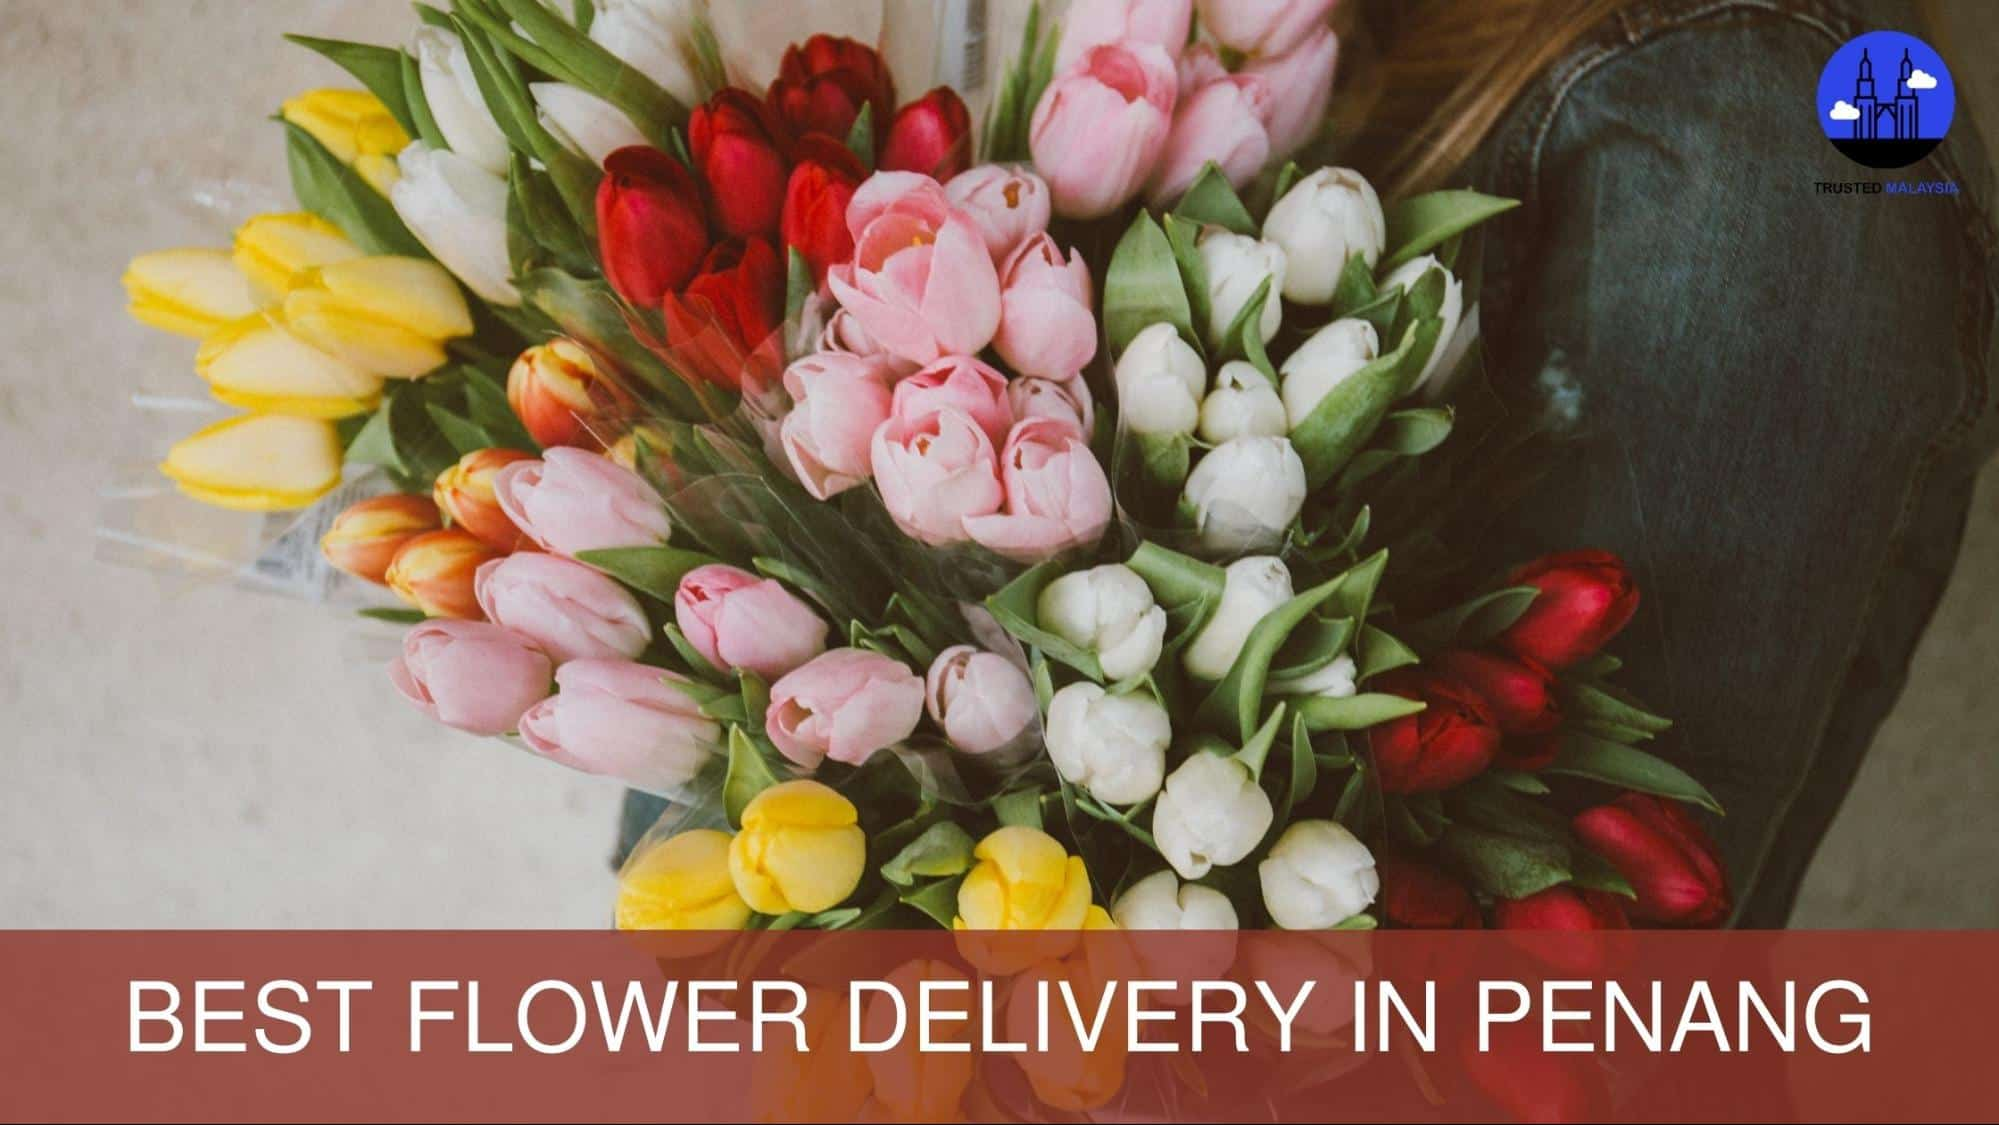 Bet Flower Delivery in Penang